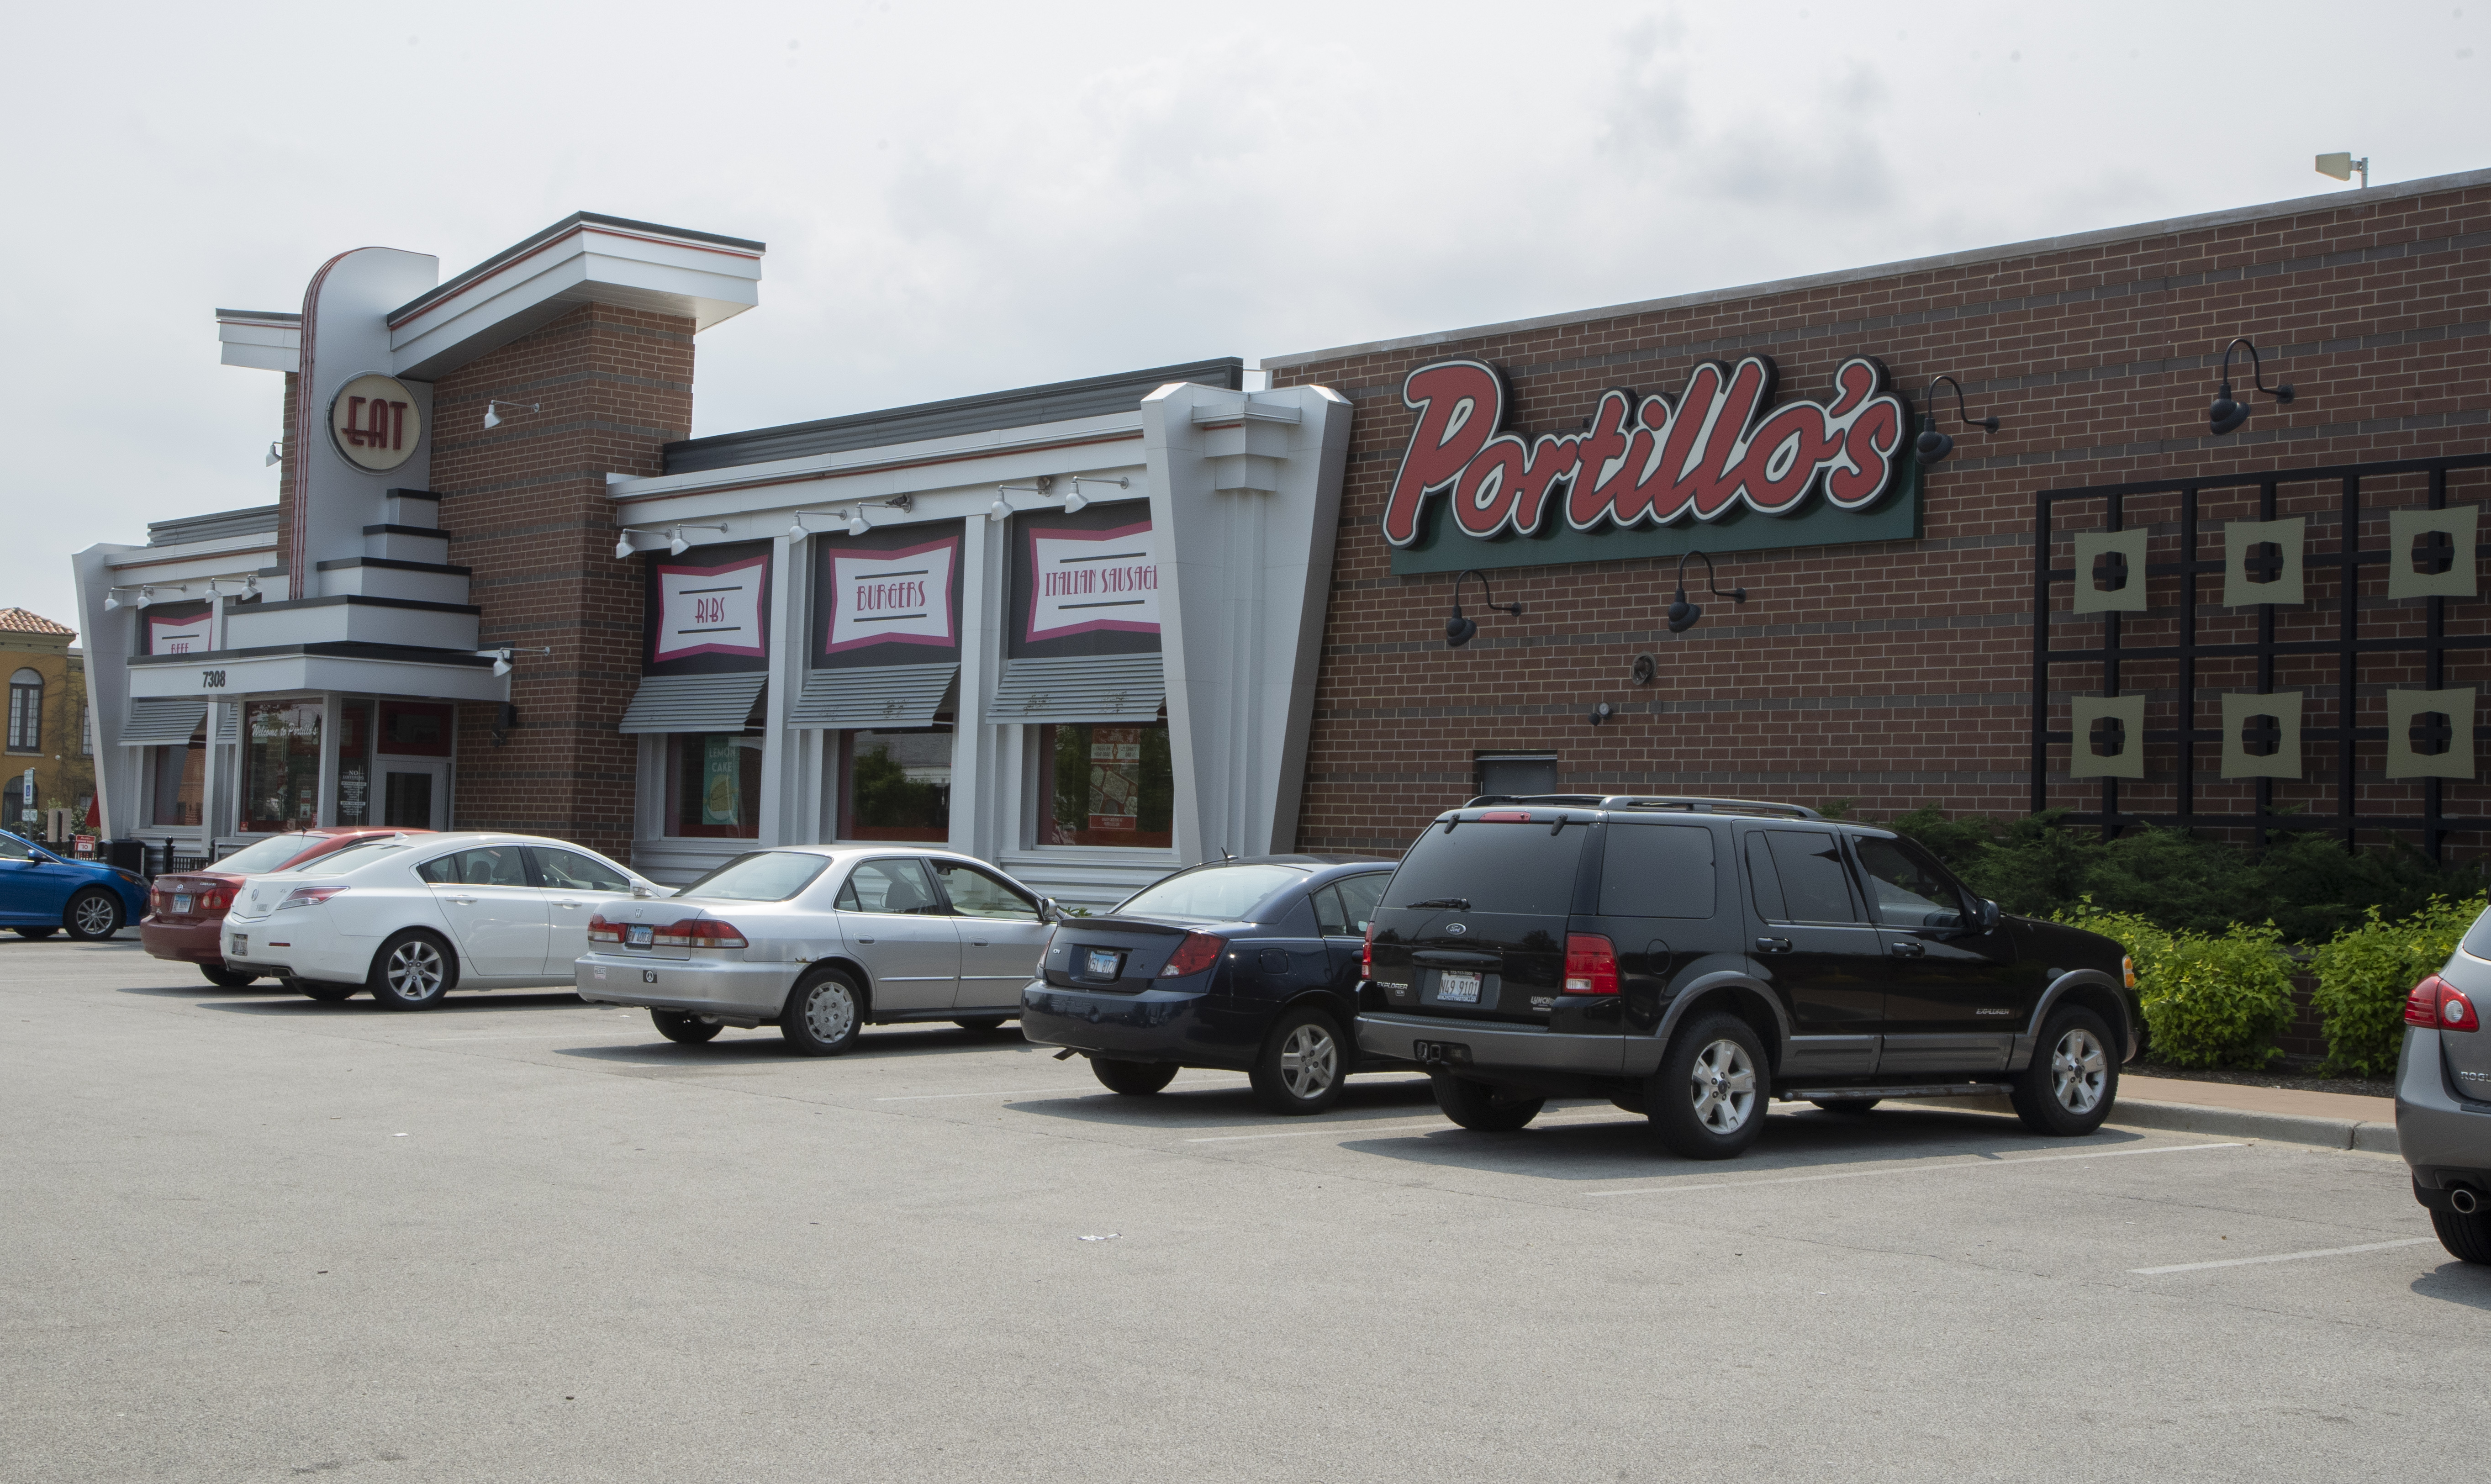 The Portillo's Hot Dogs located at 7308 W. Lawrence Ave.